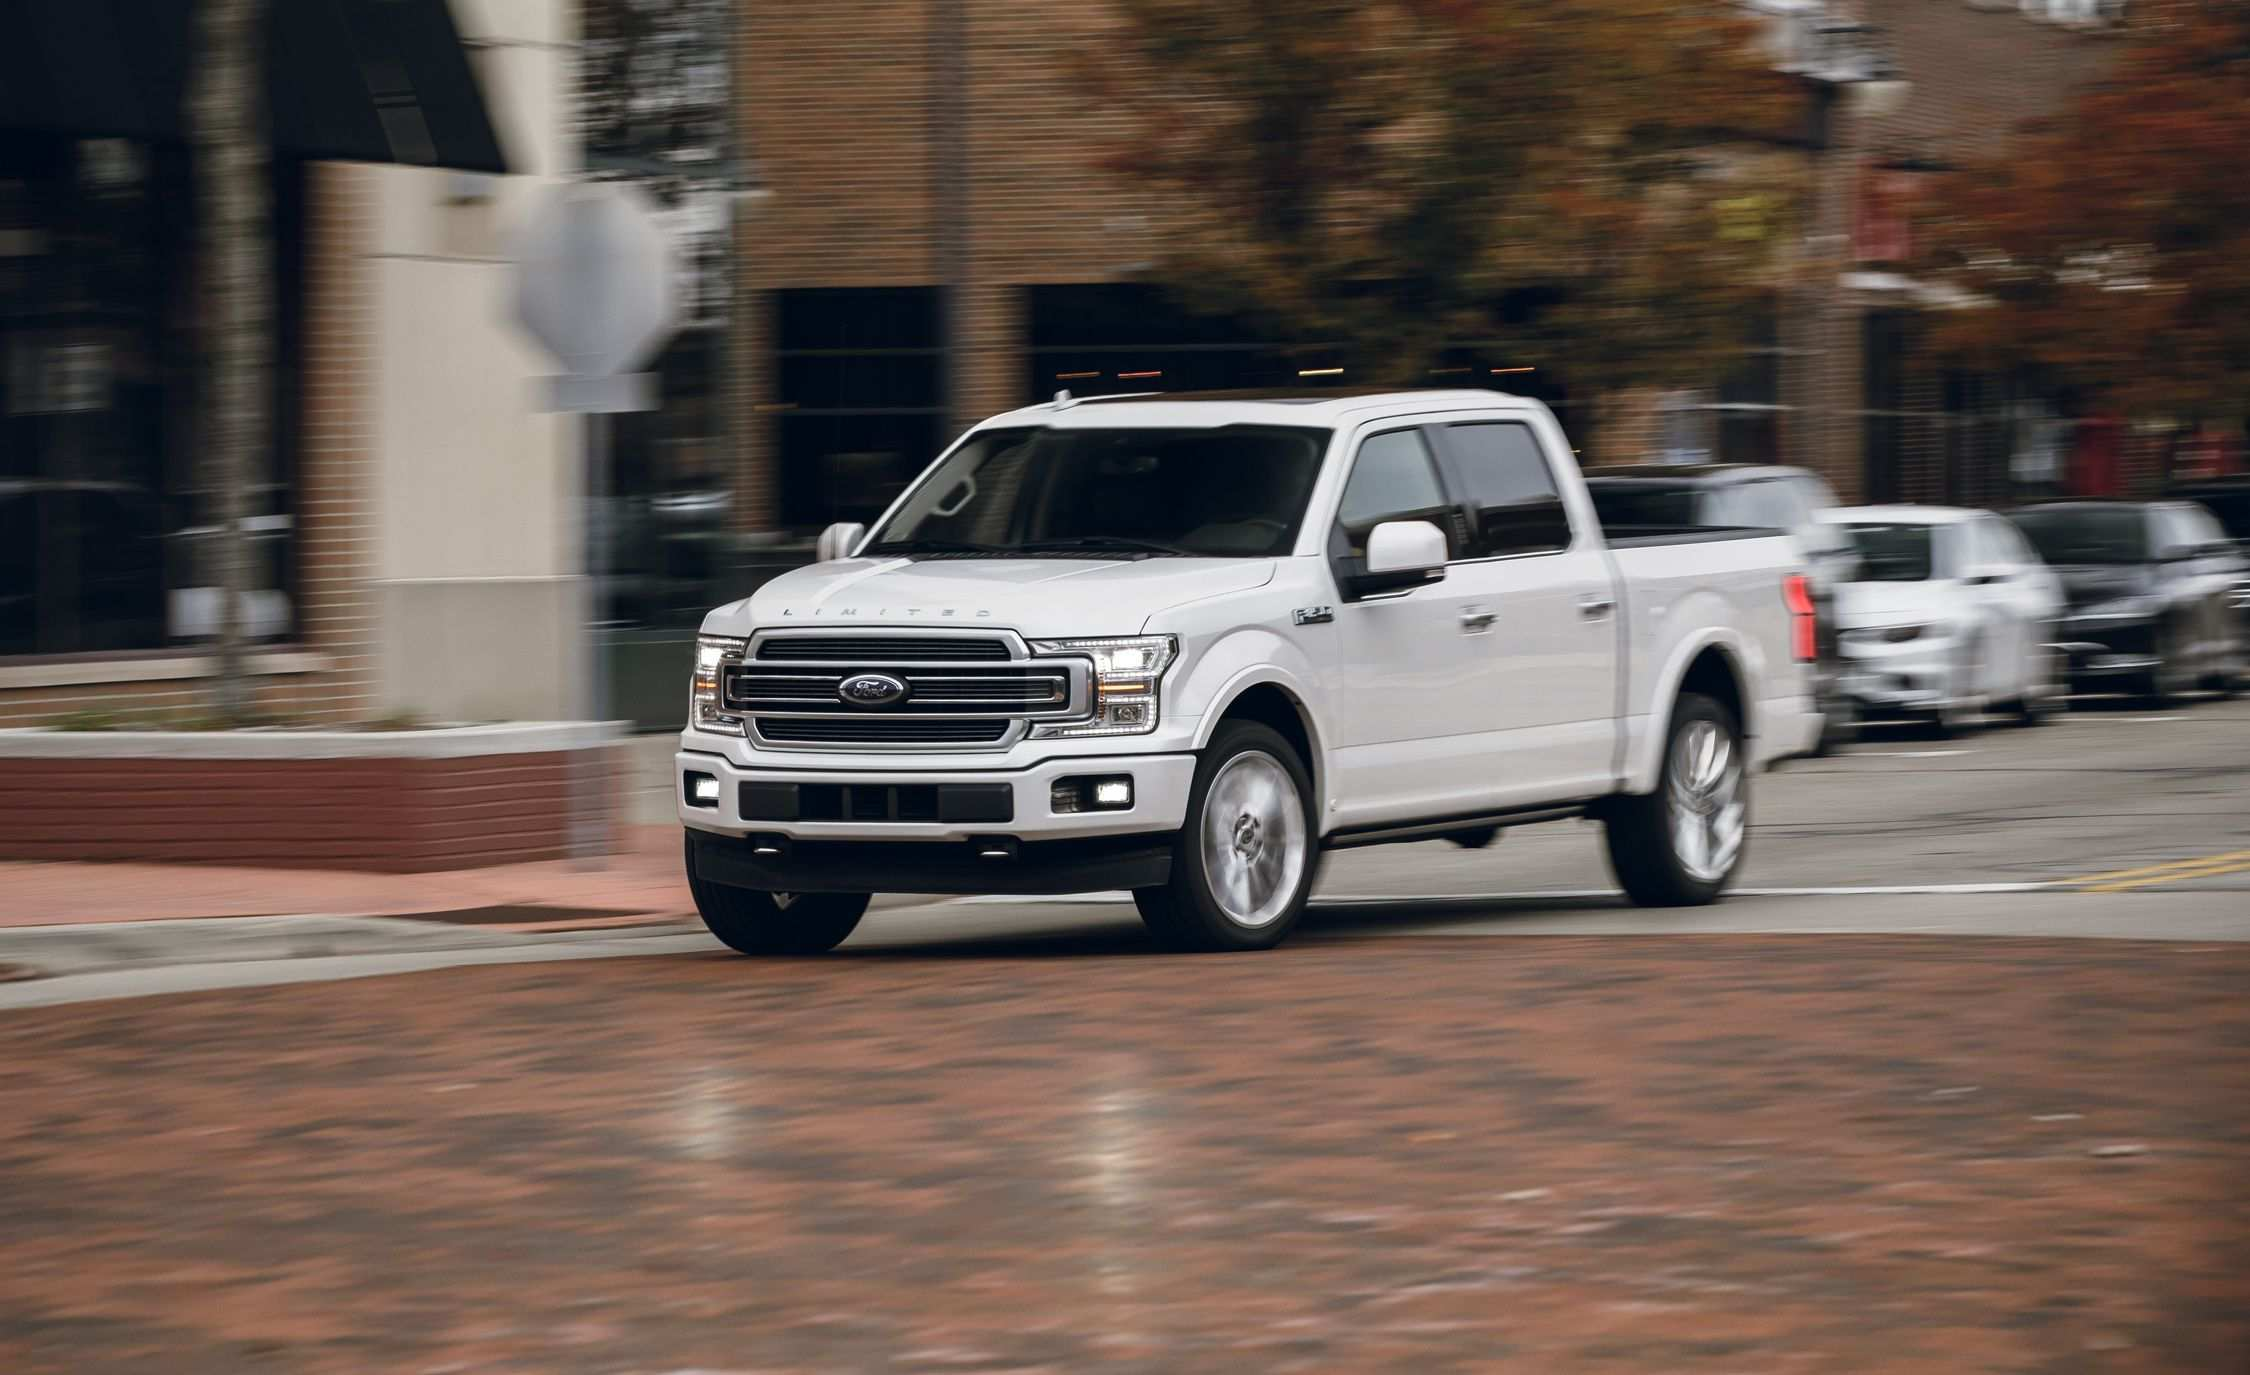 85 All New 2019 Ford F150 Exterior and Interior by 2019 Ford F150